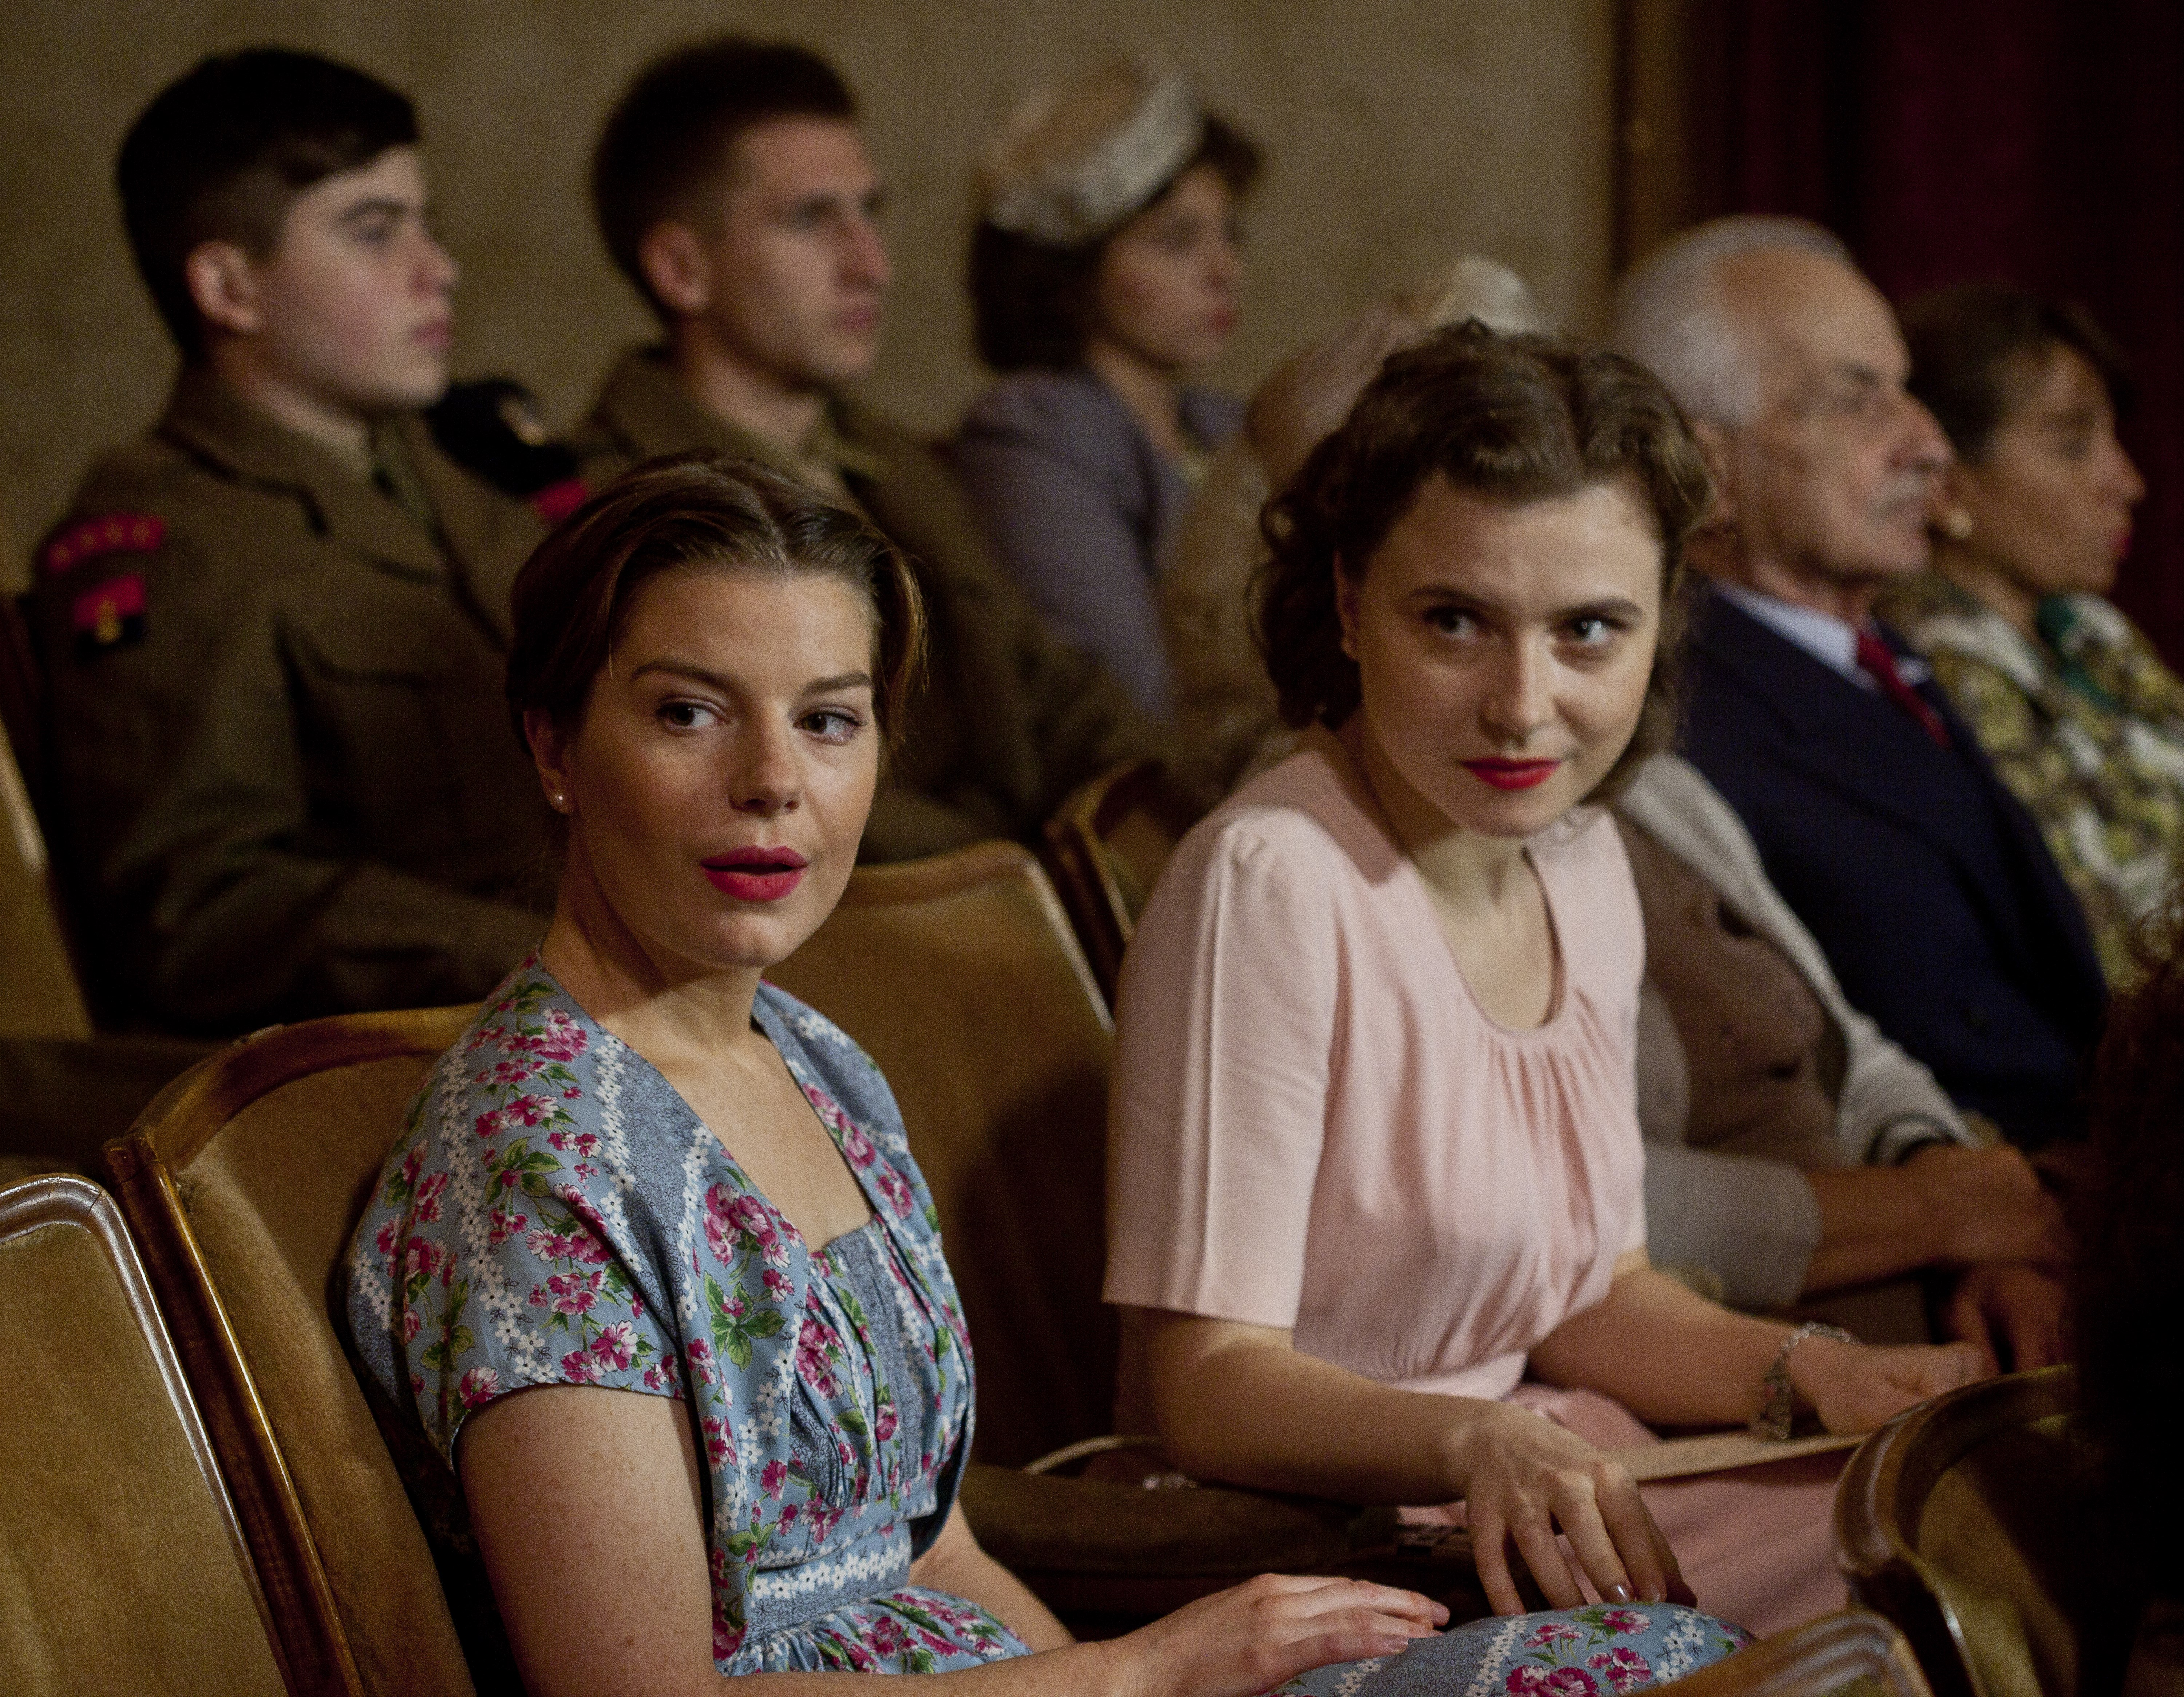 Aimee-Ffion Edwards and Miriam Rizea in Queen & Country (2014)